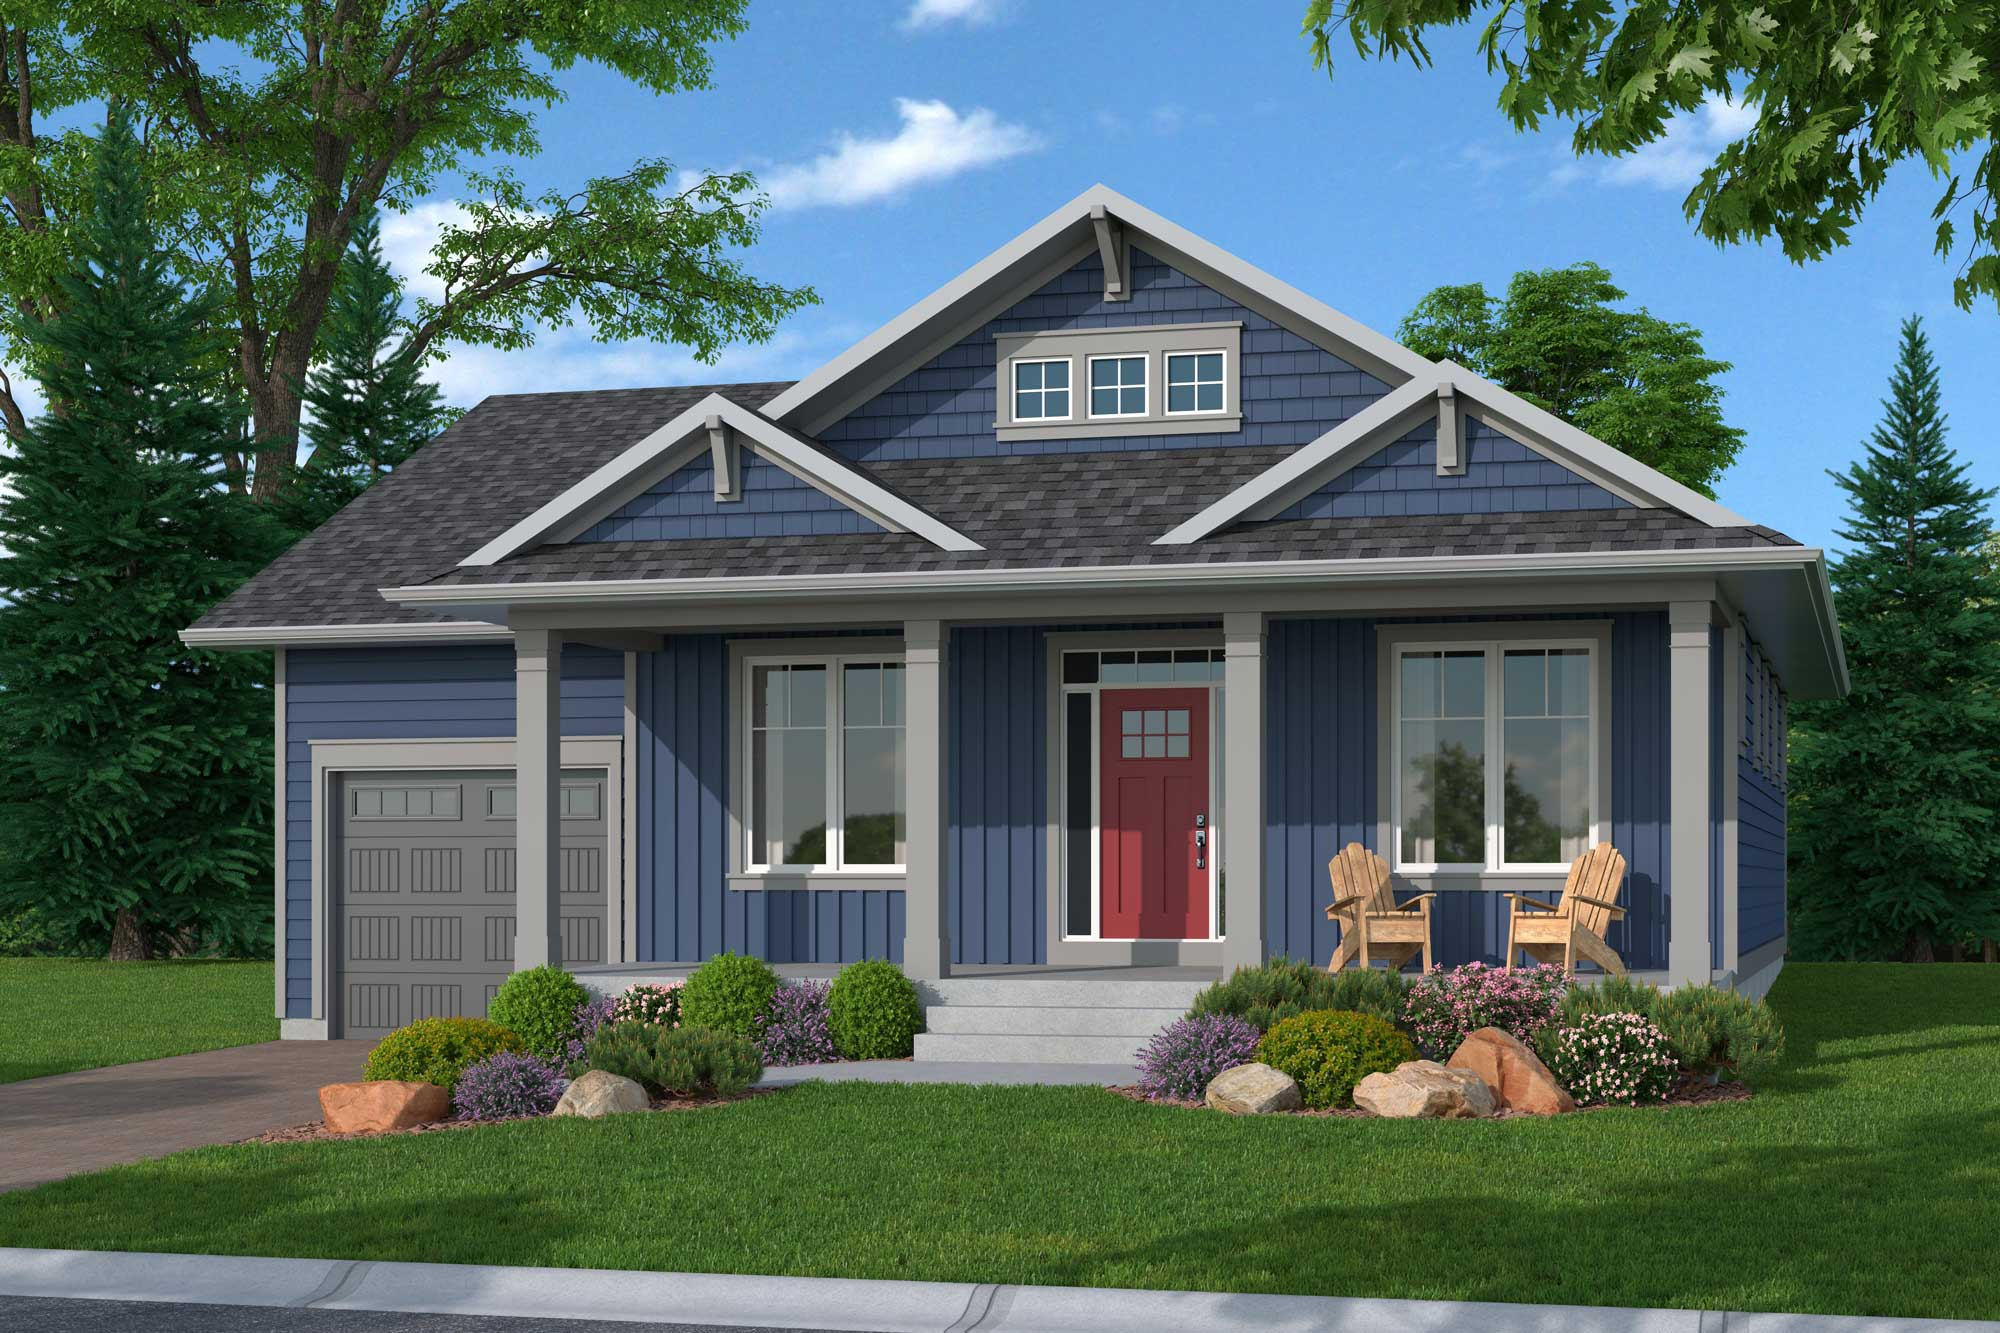 An illustration of the Rideau Bungalow at Watercolour Westport